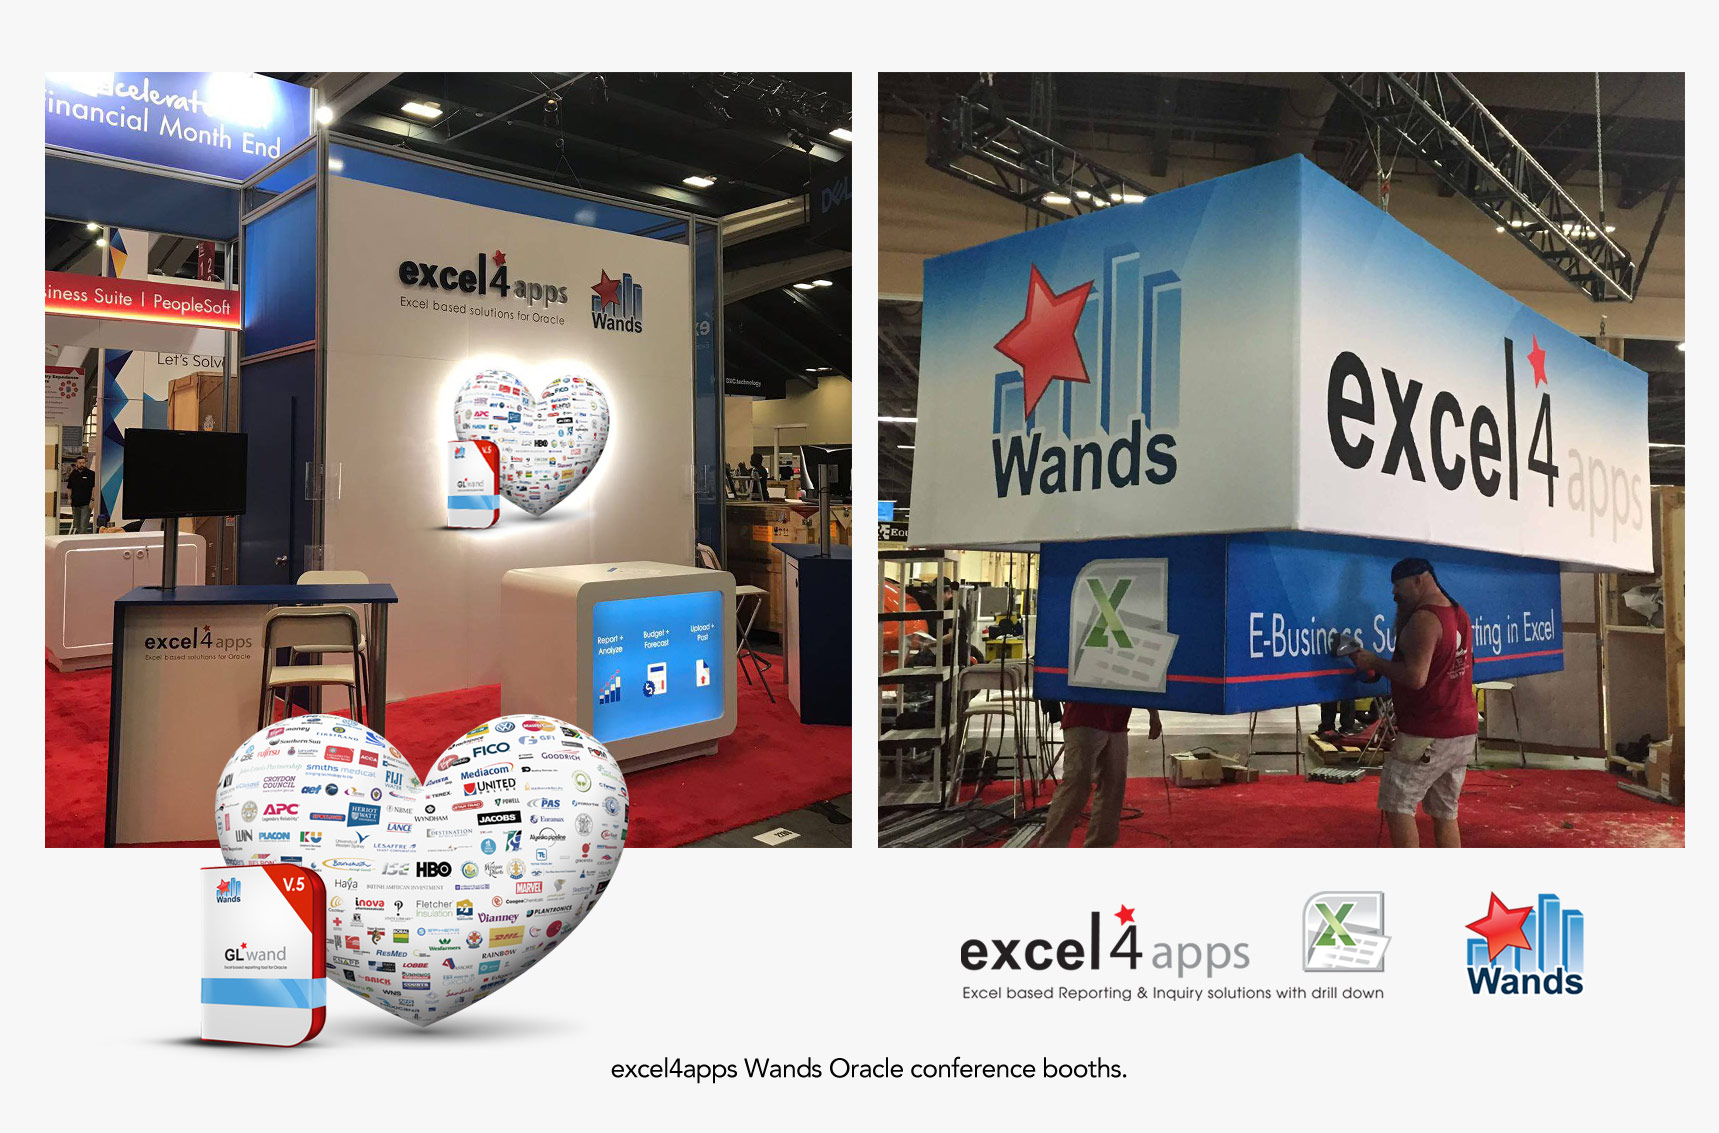 Excel4apps conference booths with 3D heart Photo illustration